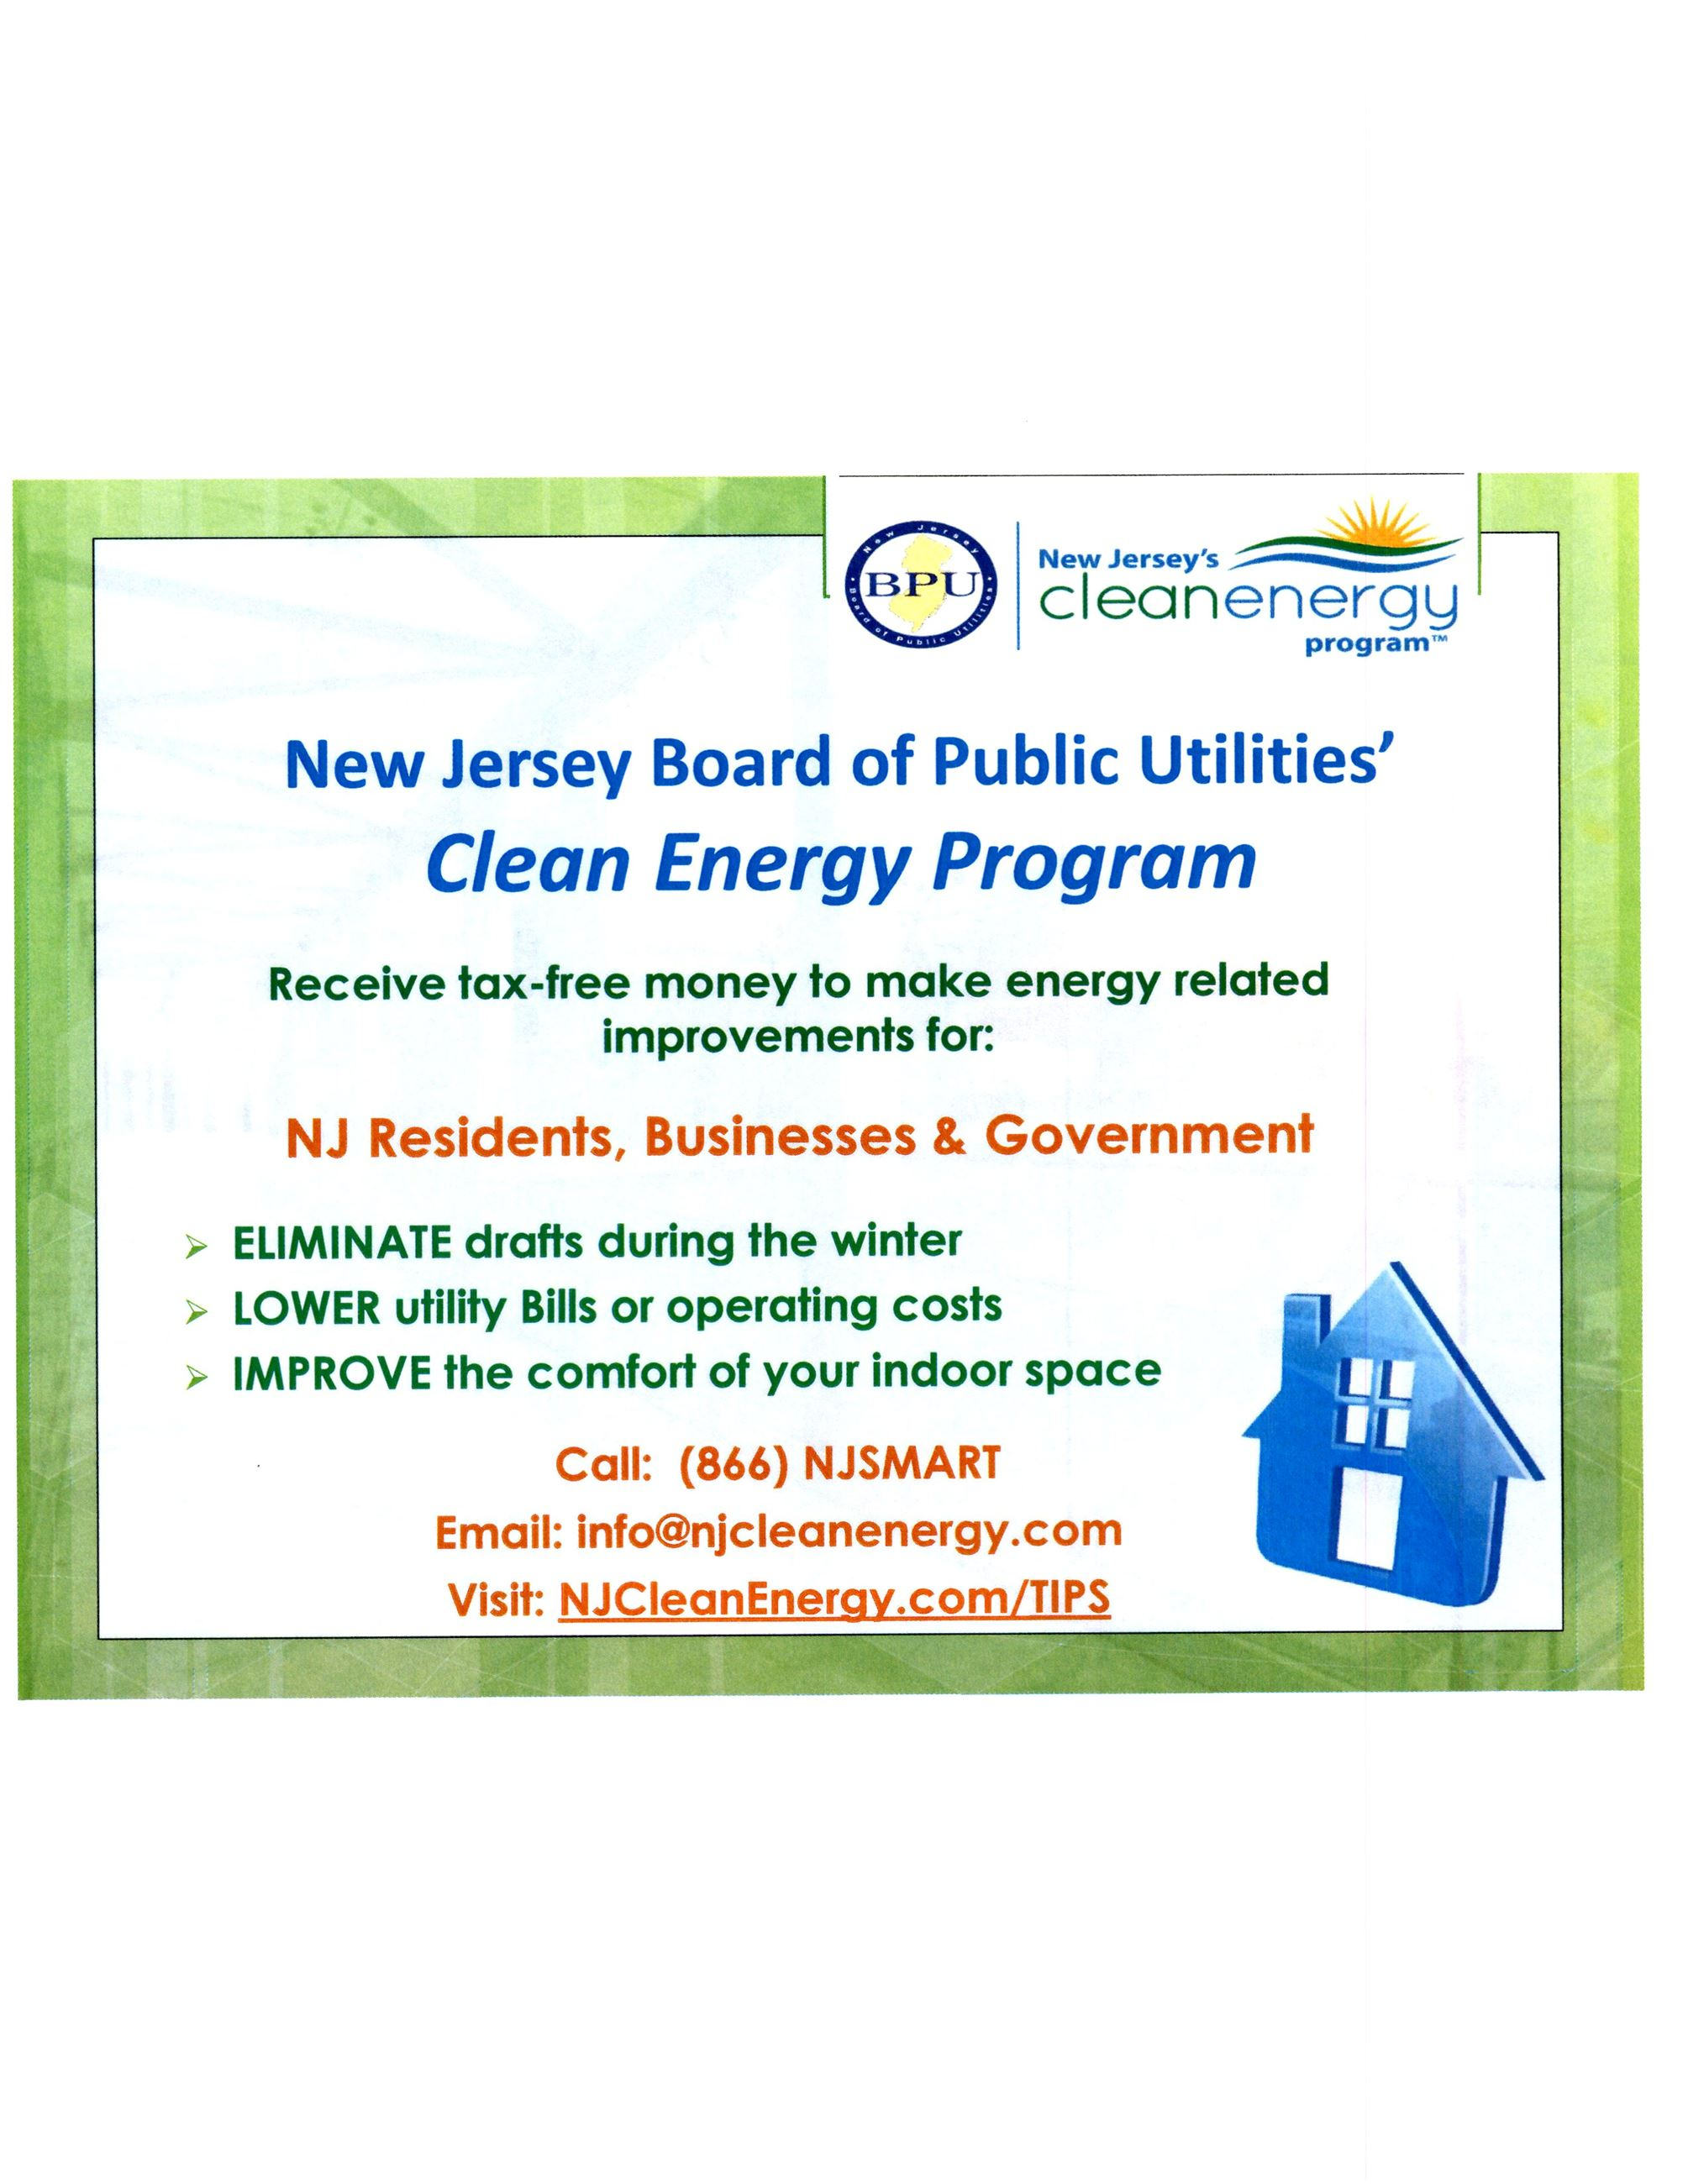 Clean Energy Program